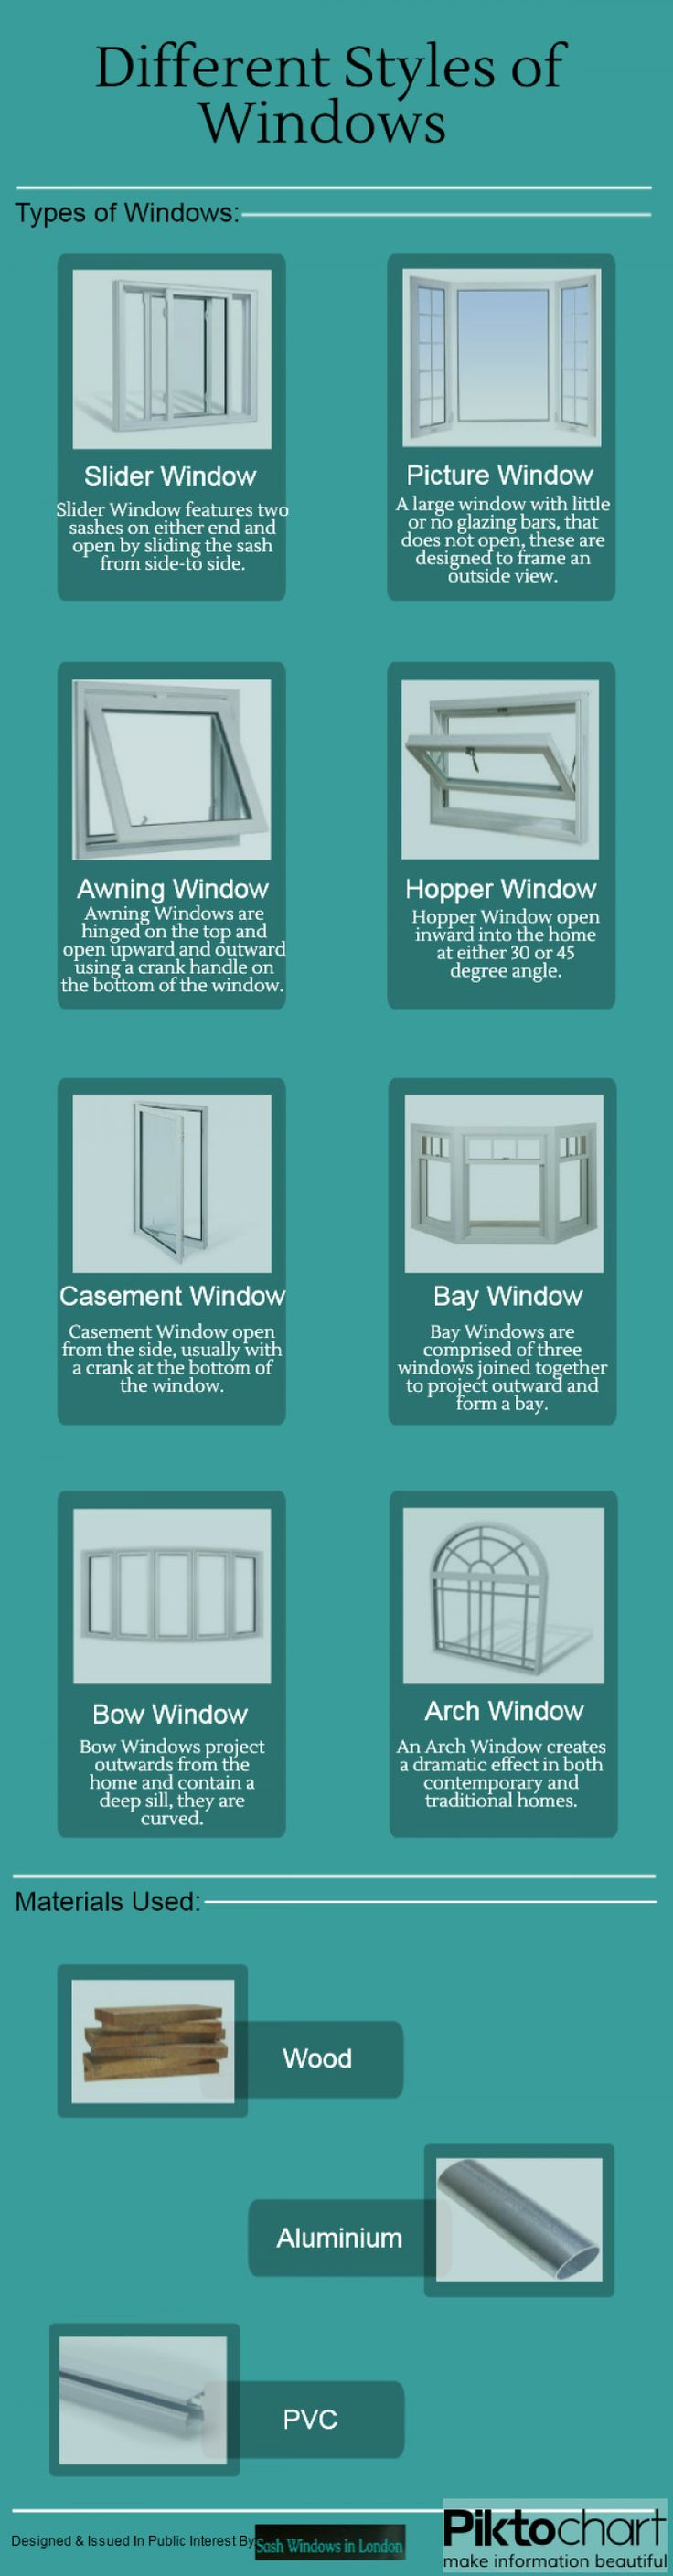 15 best Roofing Education Center images on Pinterest | Infographic ...